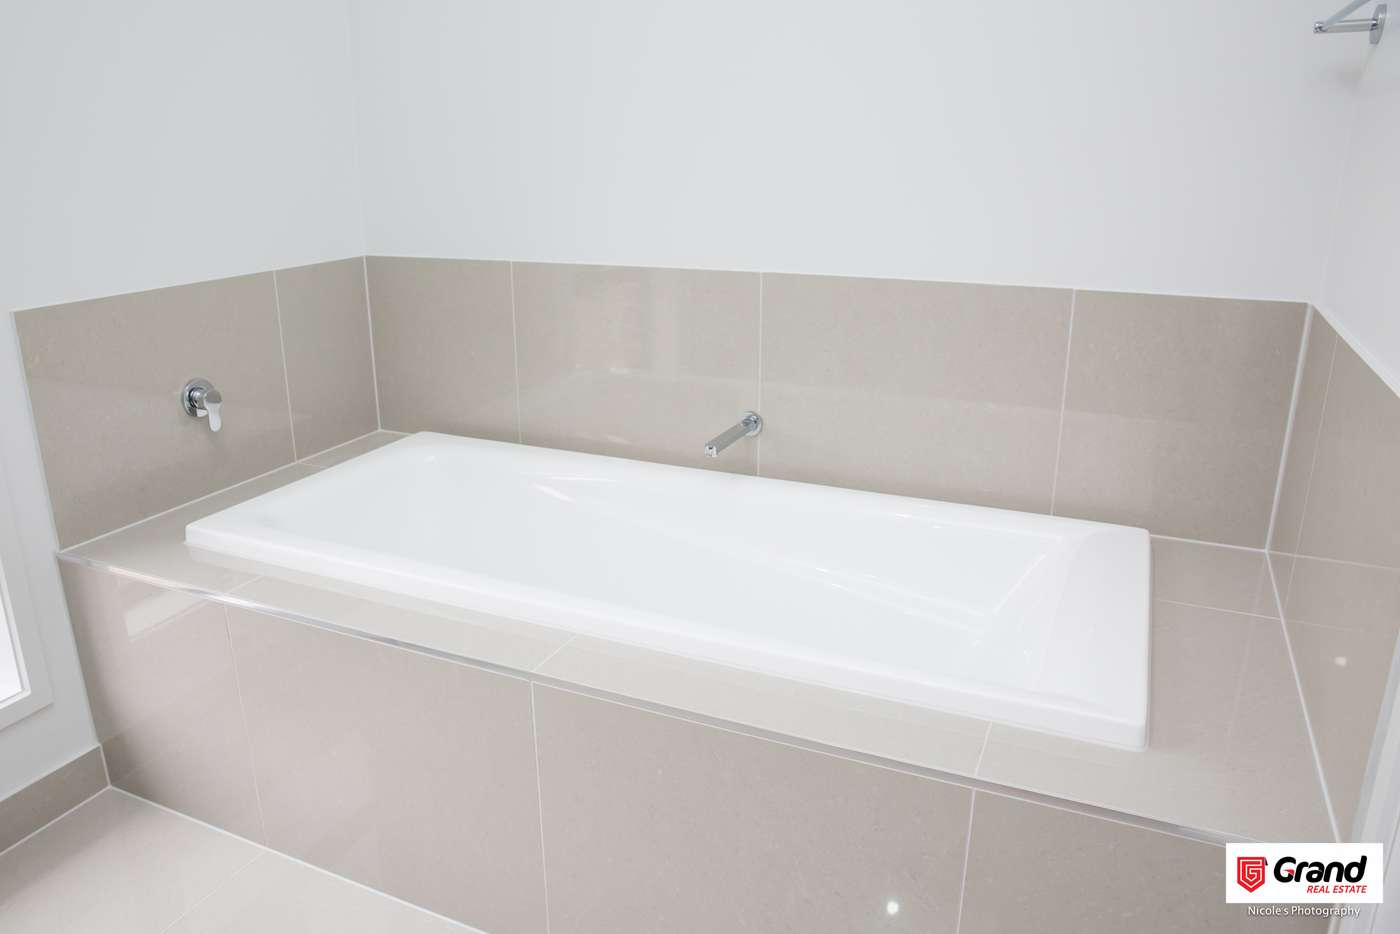 Sixth view of Homely house listing, 26 Gemma St, Cranbourne East VIC 3977